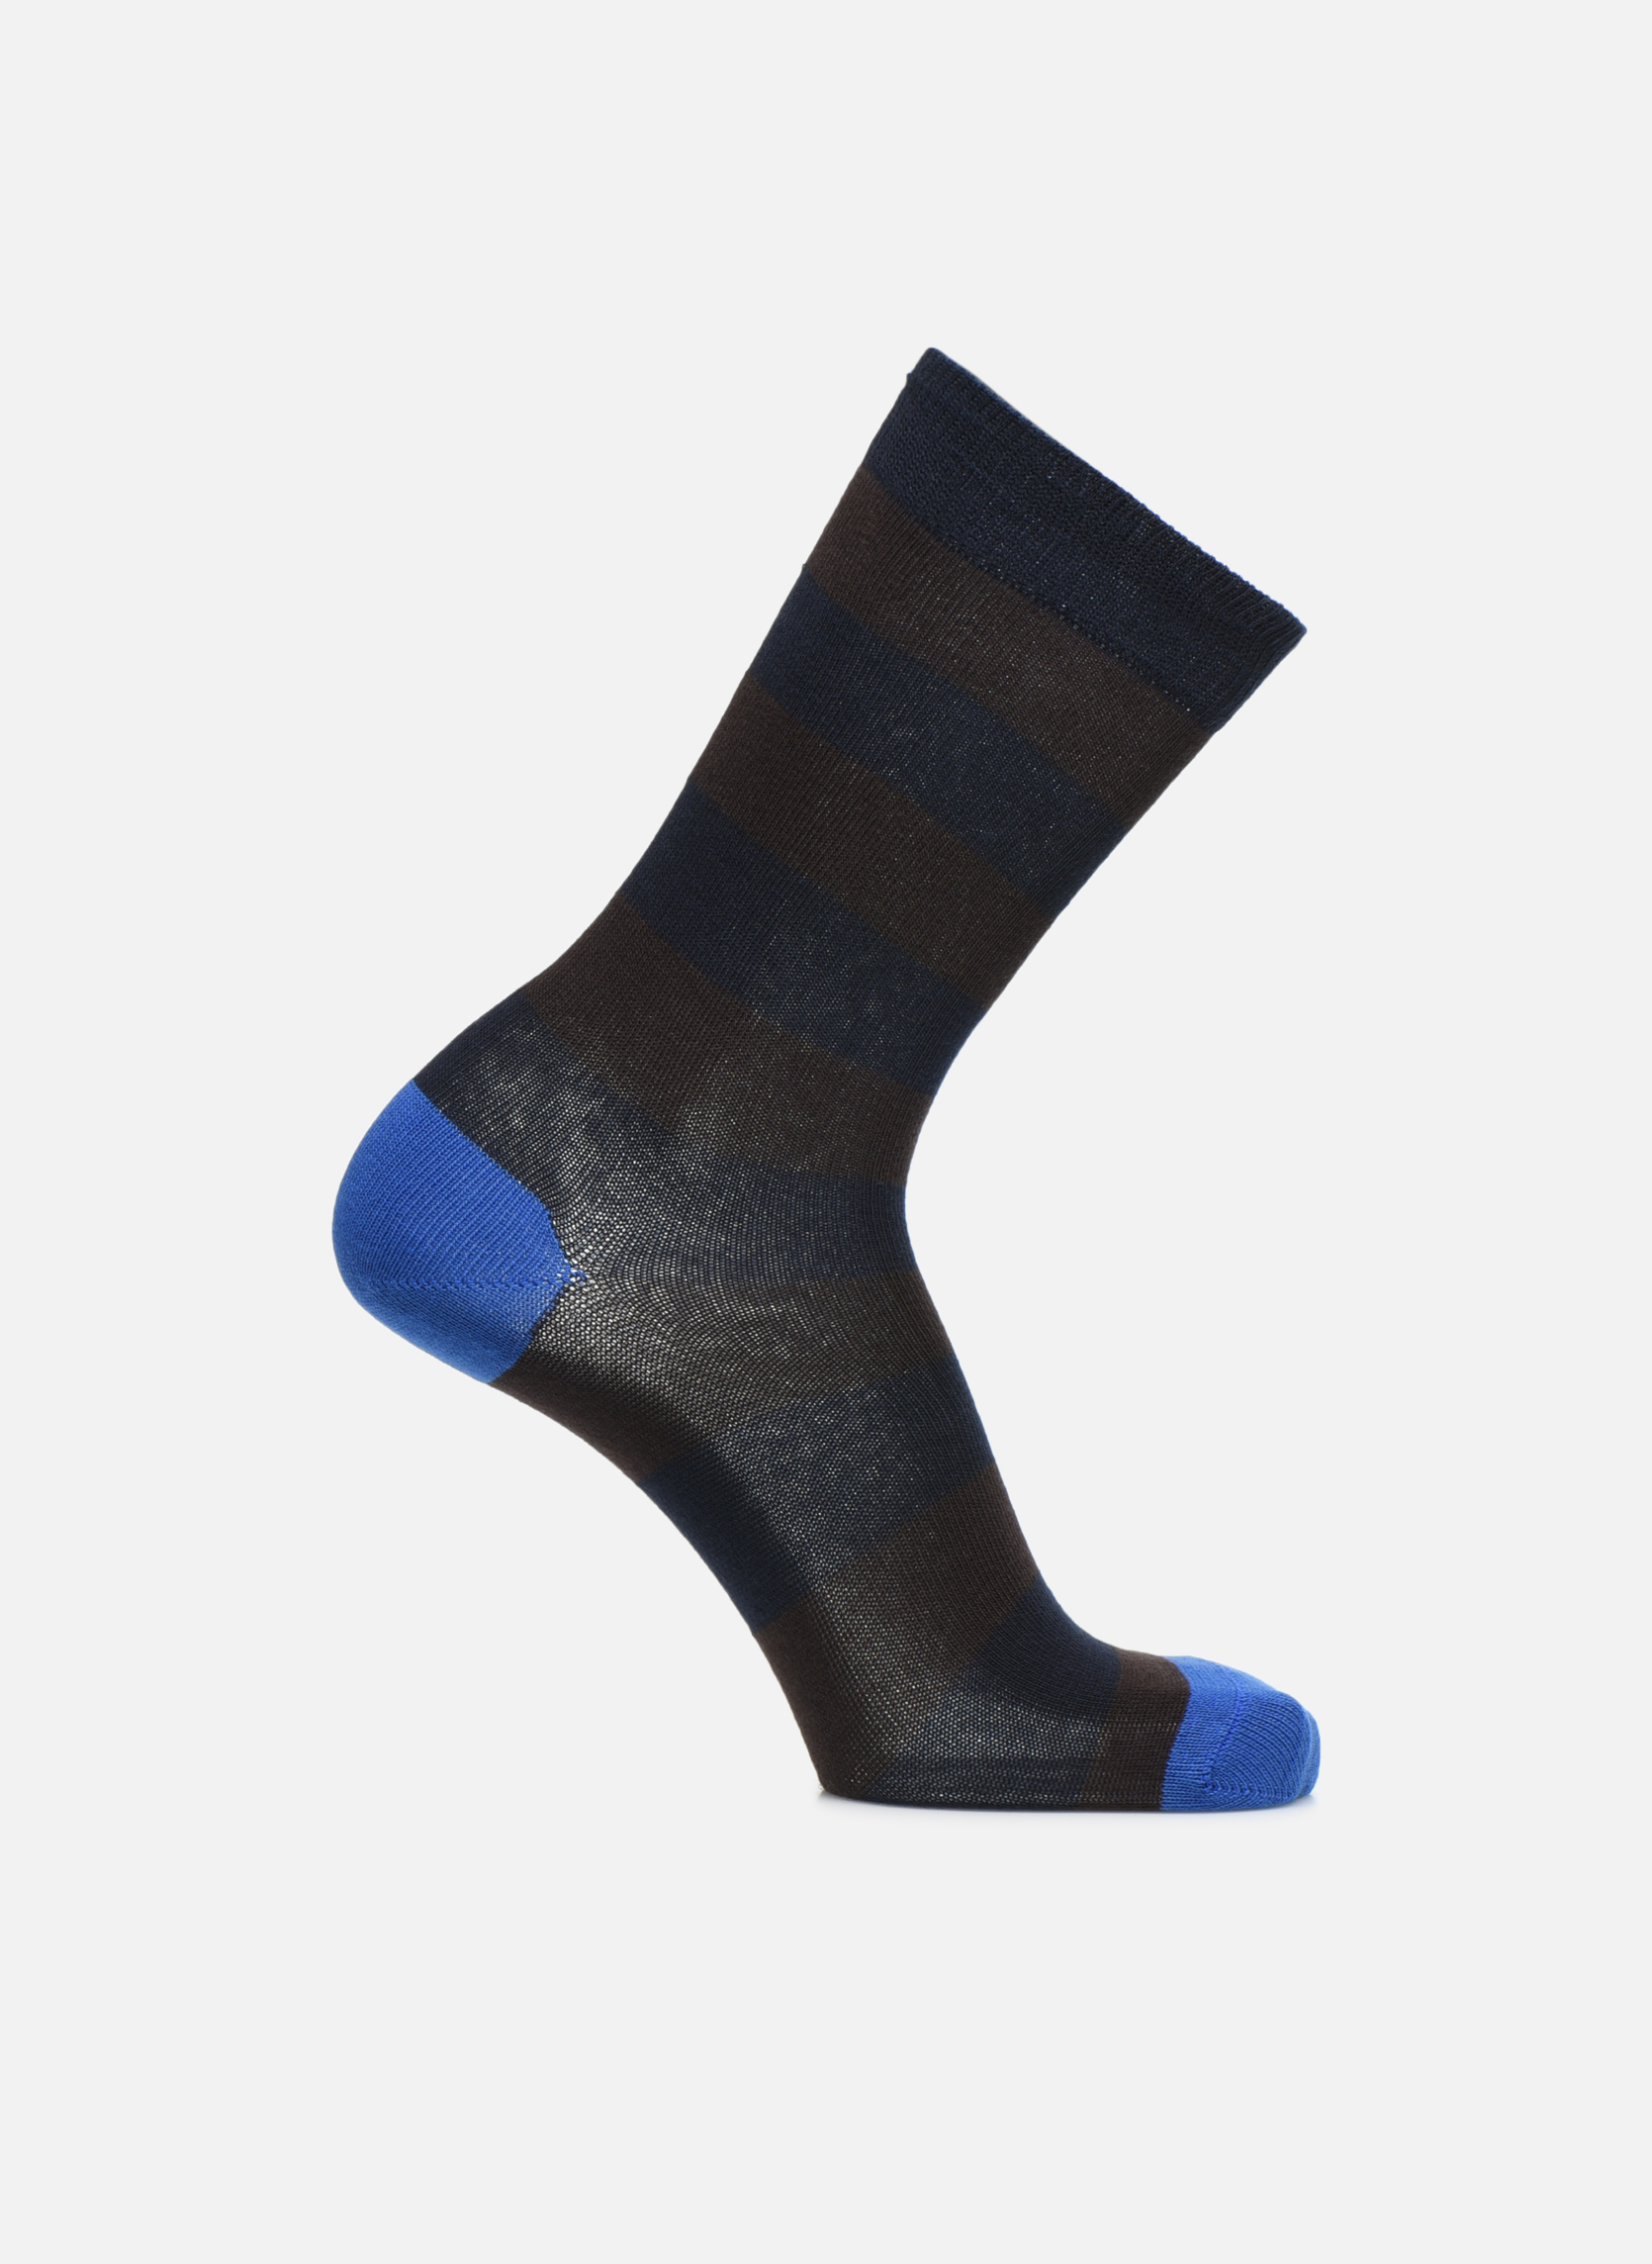 Chaussettes larges rayures marine/brun